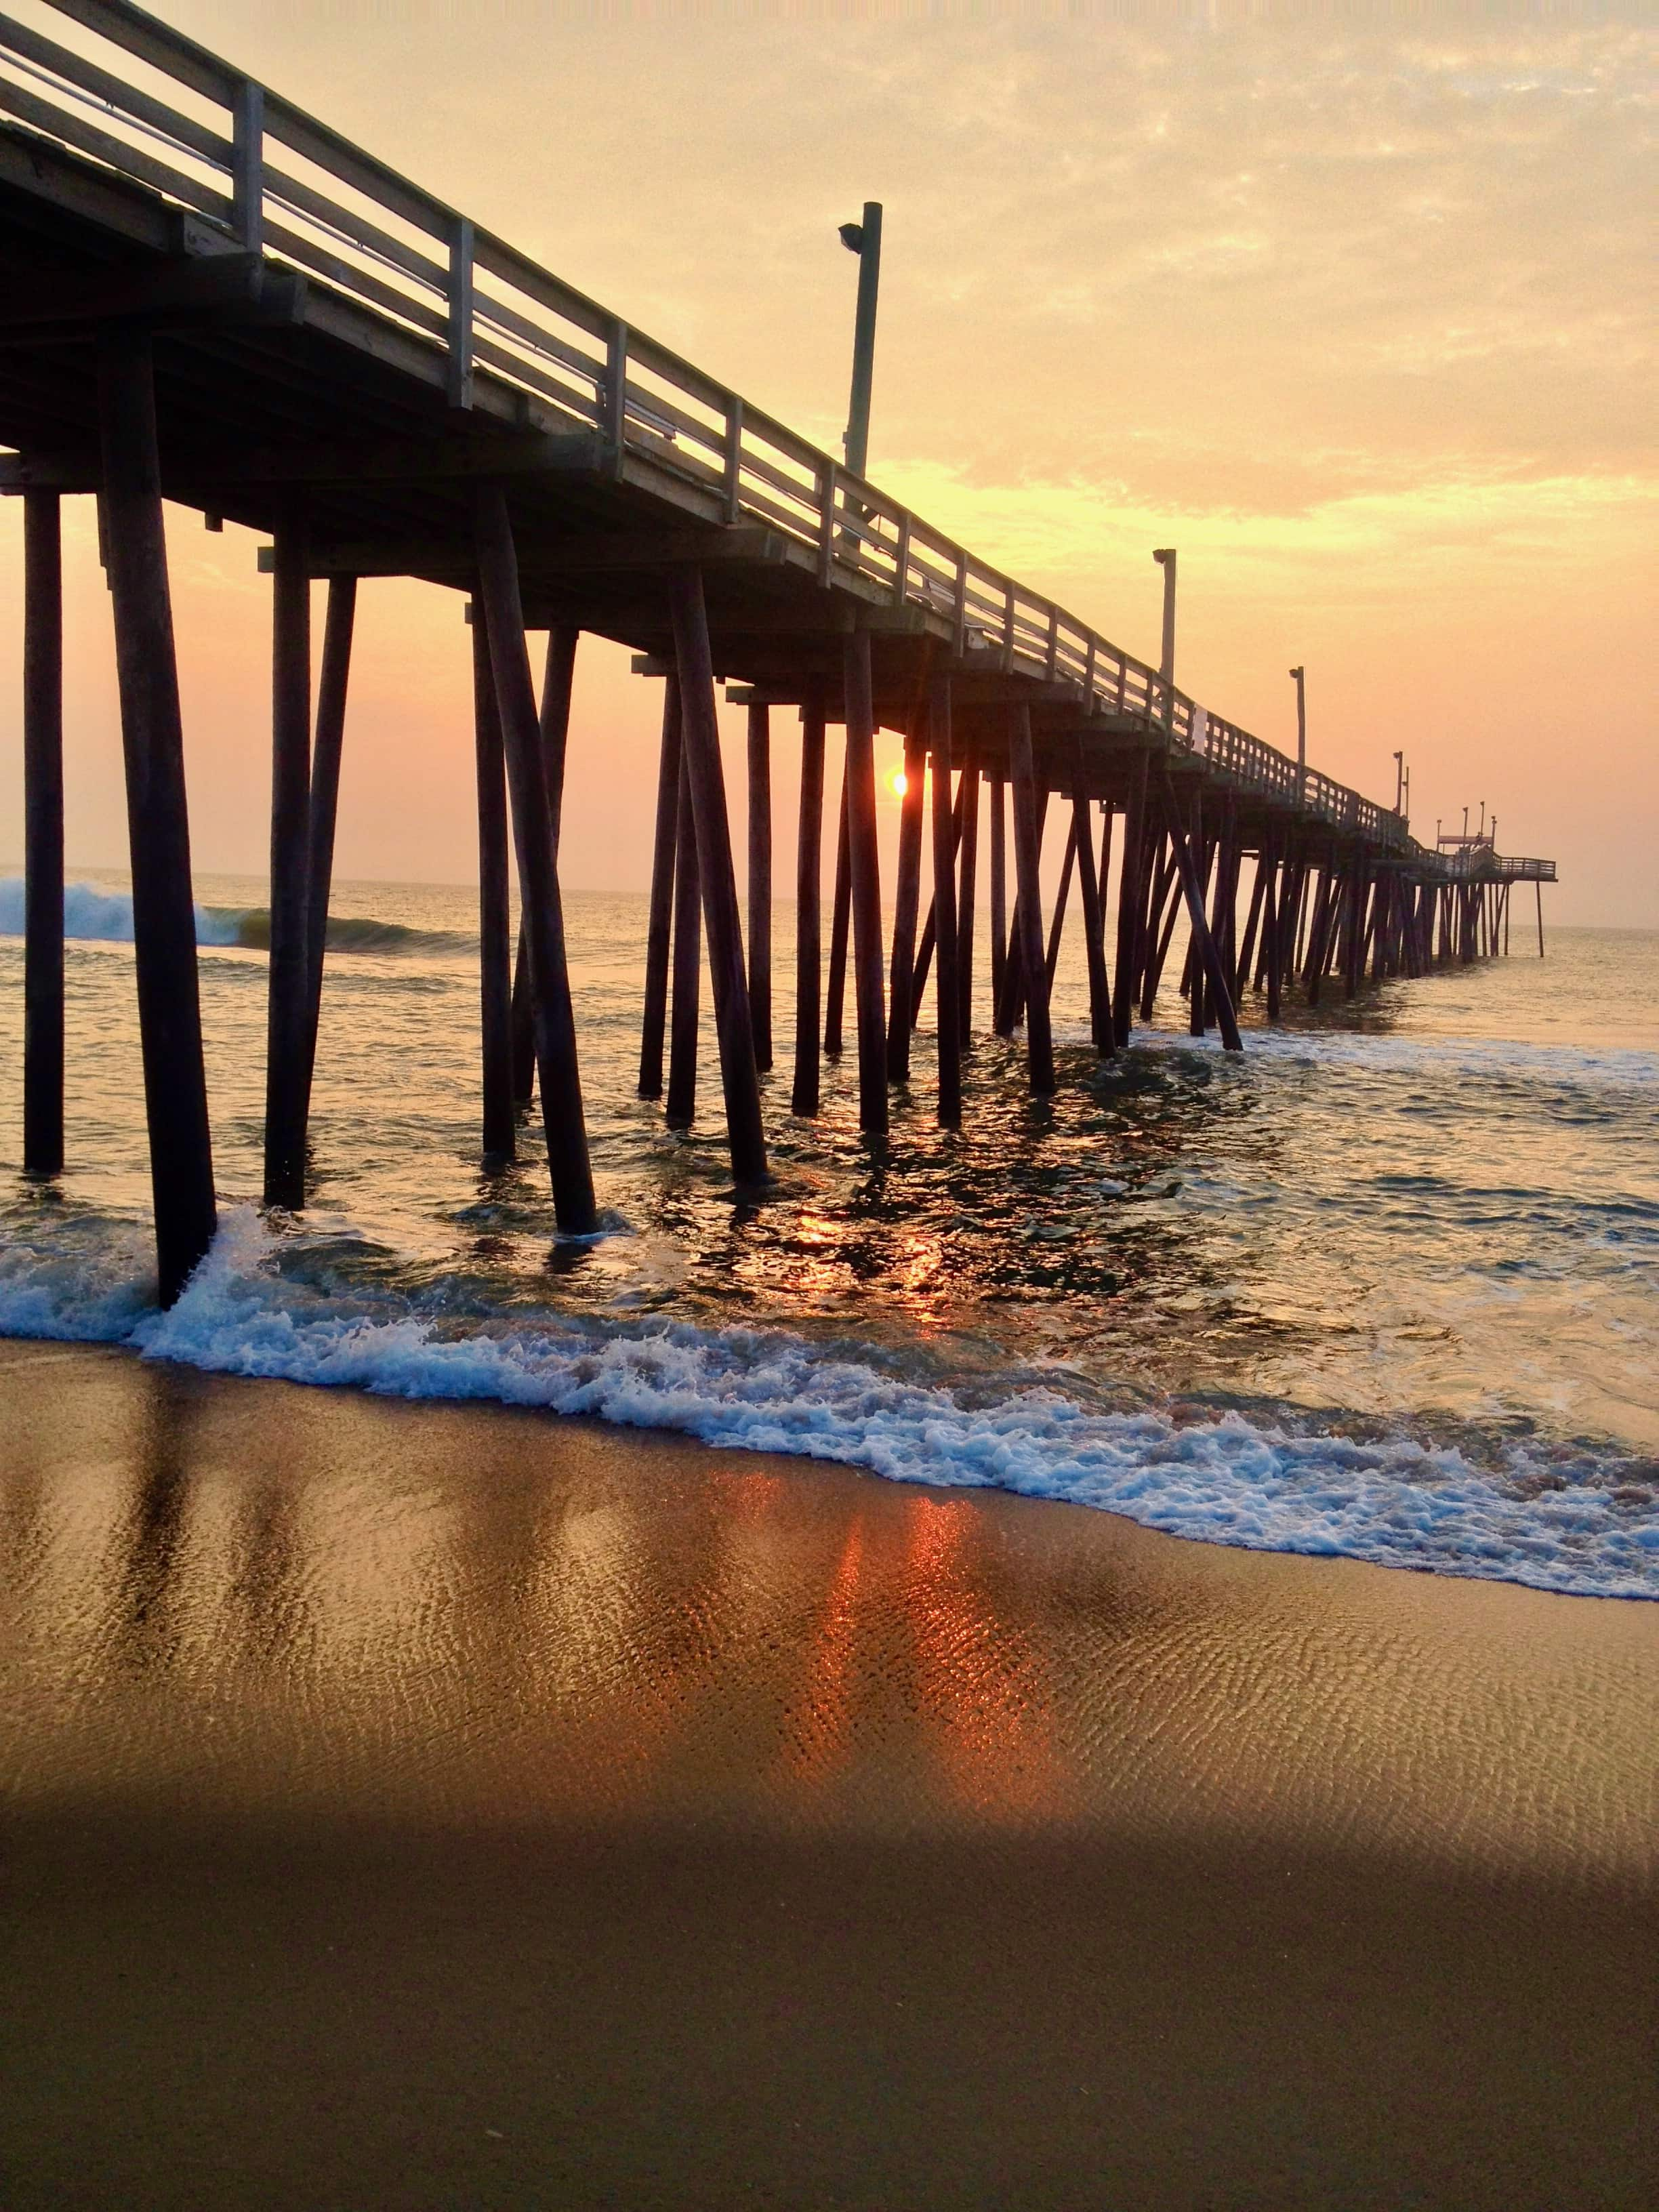 Rodanthe fishing pier at the Outer Banks, NC